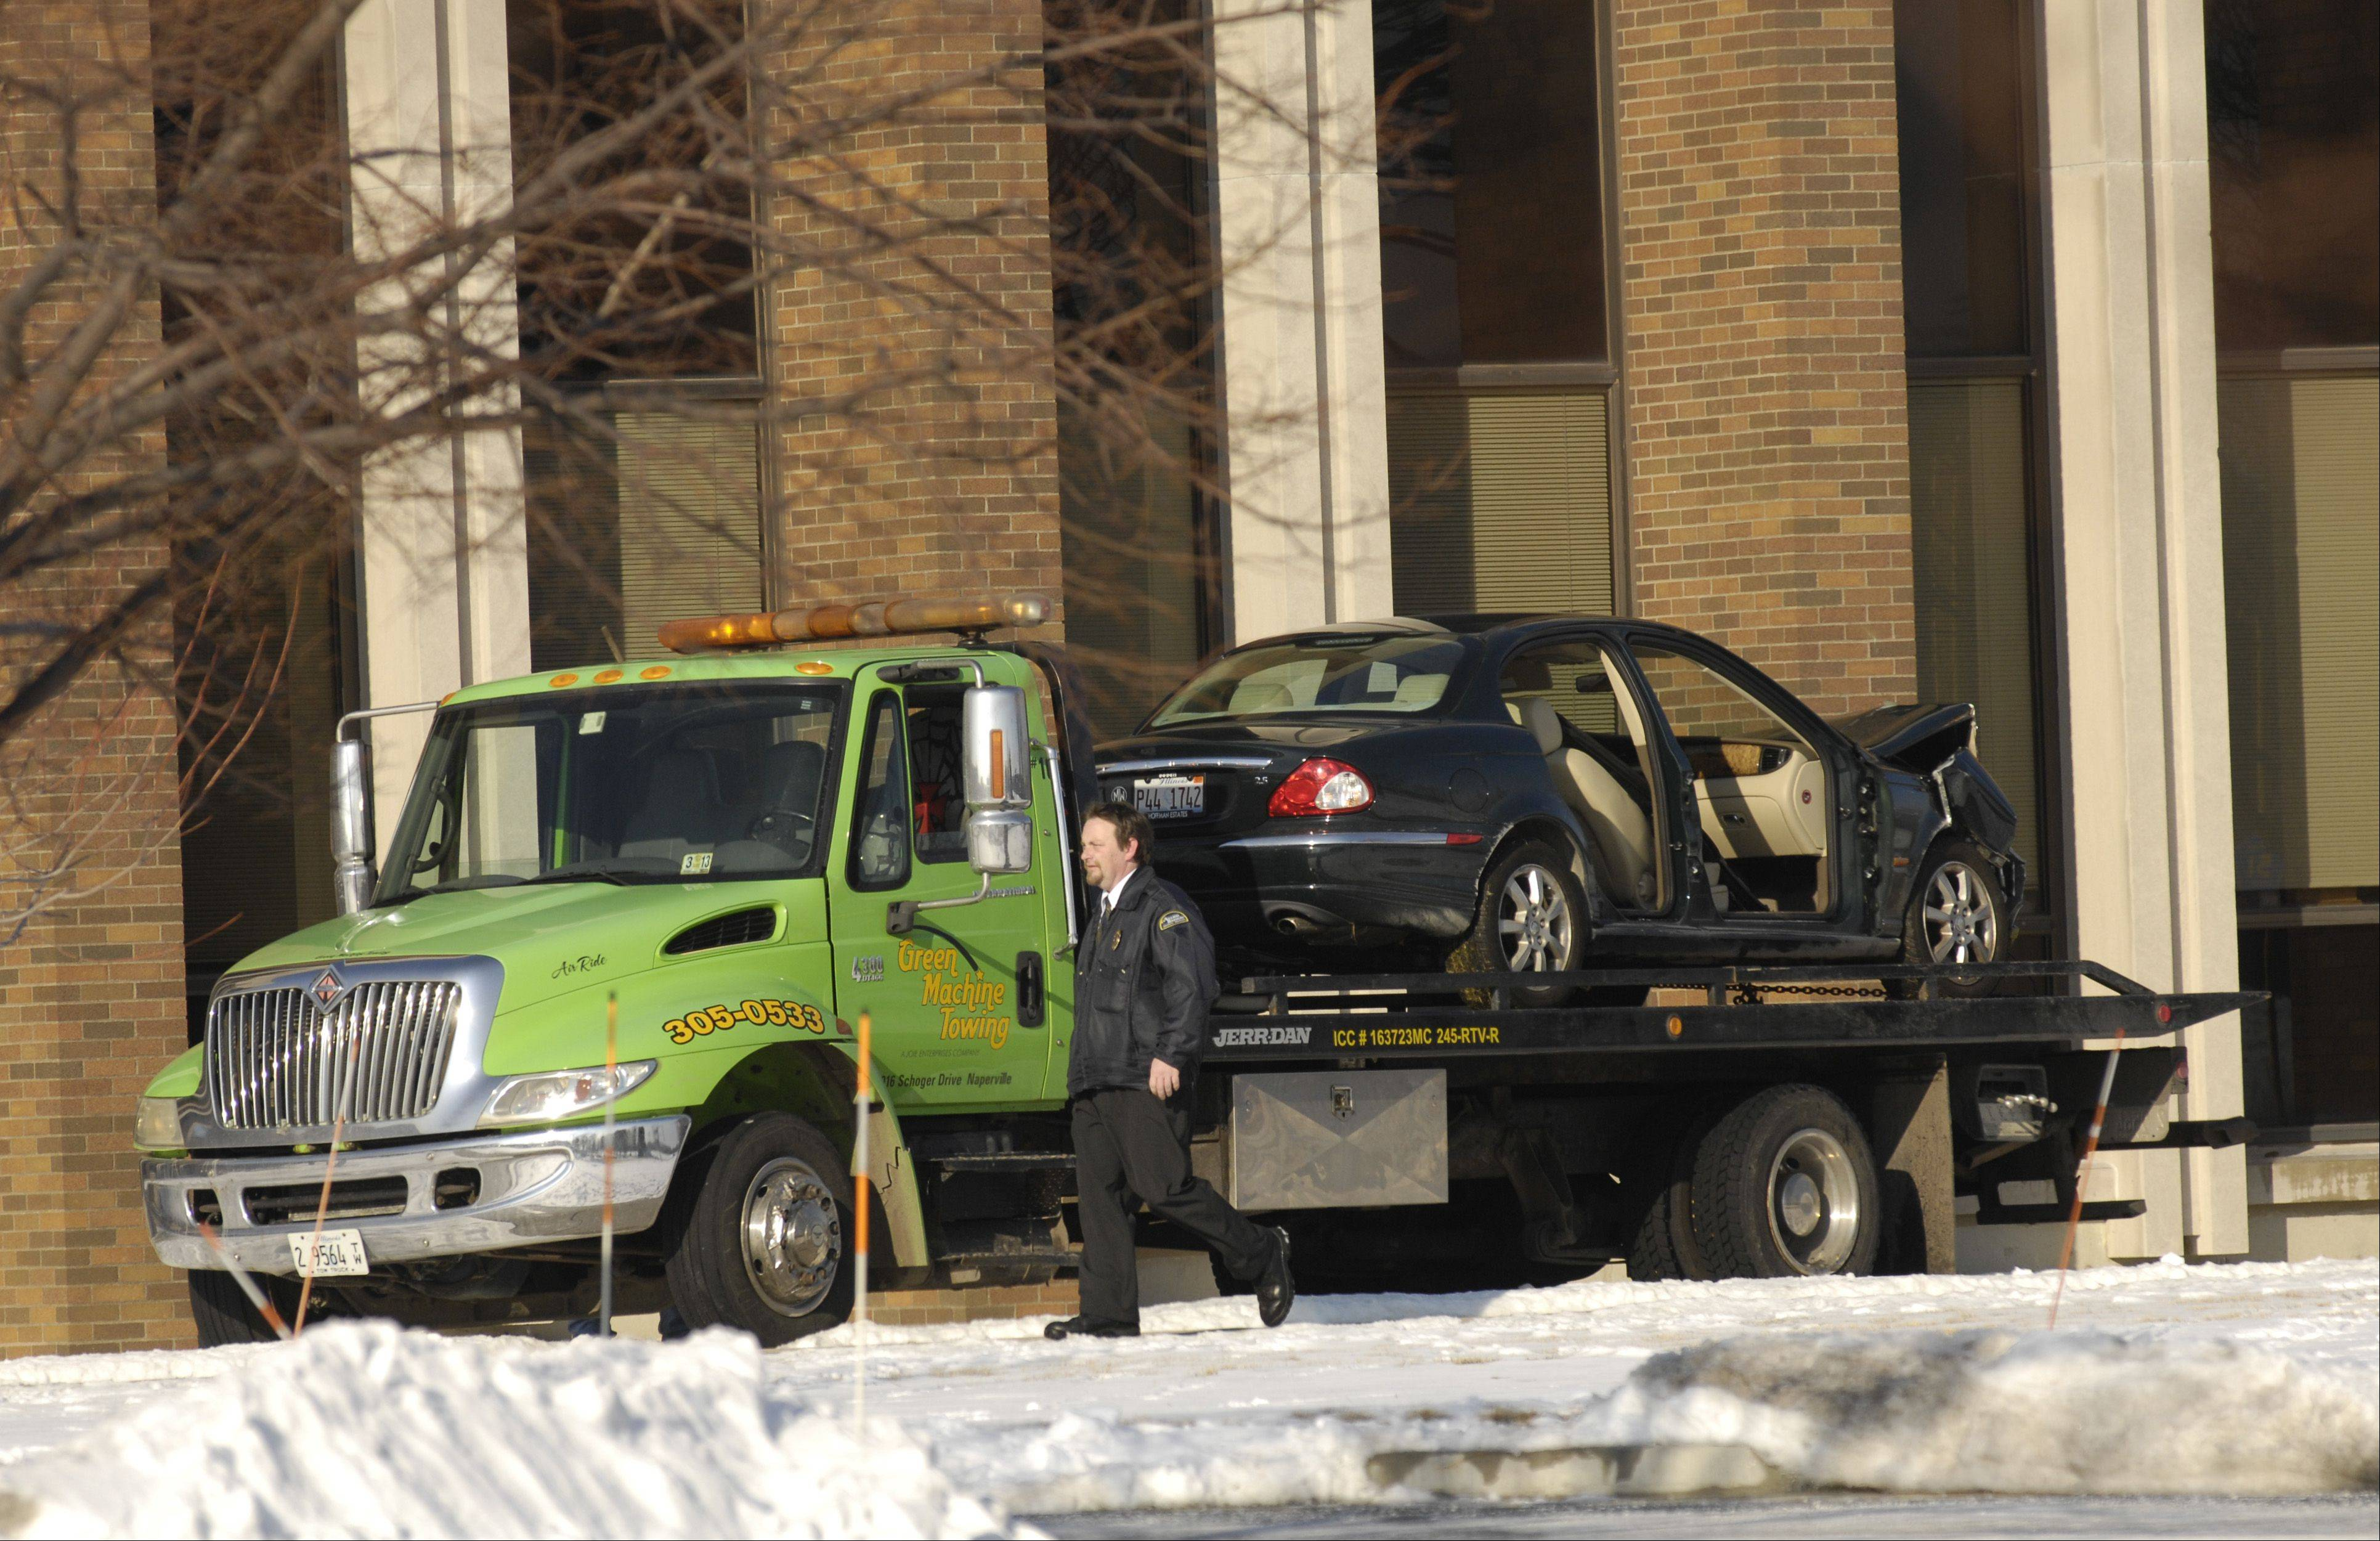 A car is removed from the scene after striking a building that houses DePaul University�s Naperville campus. No one was seriously injured.